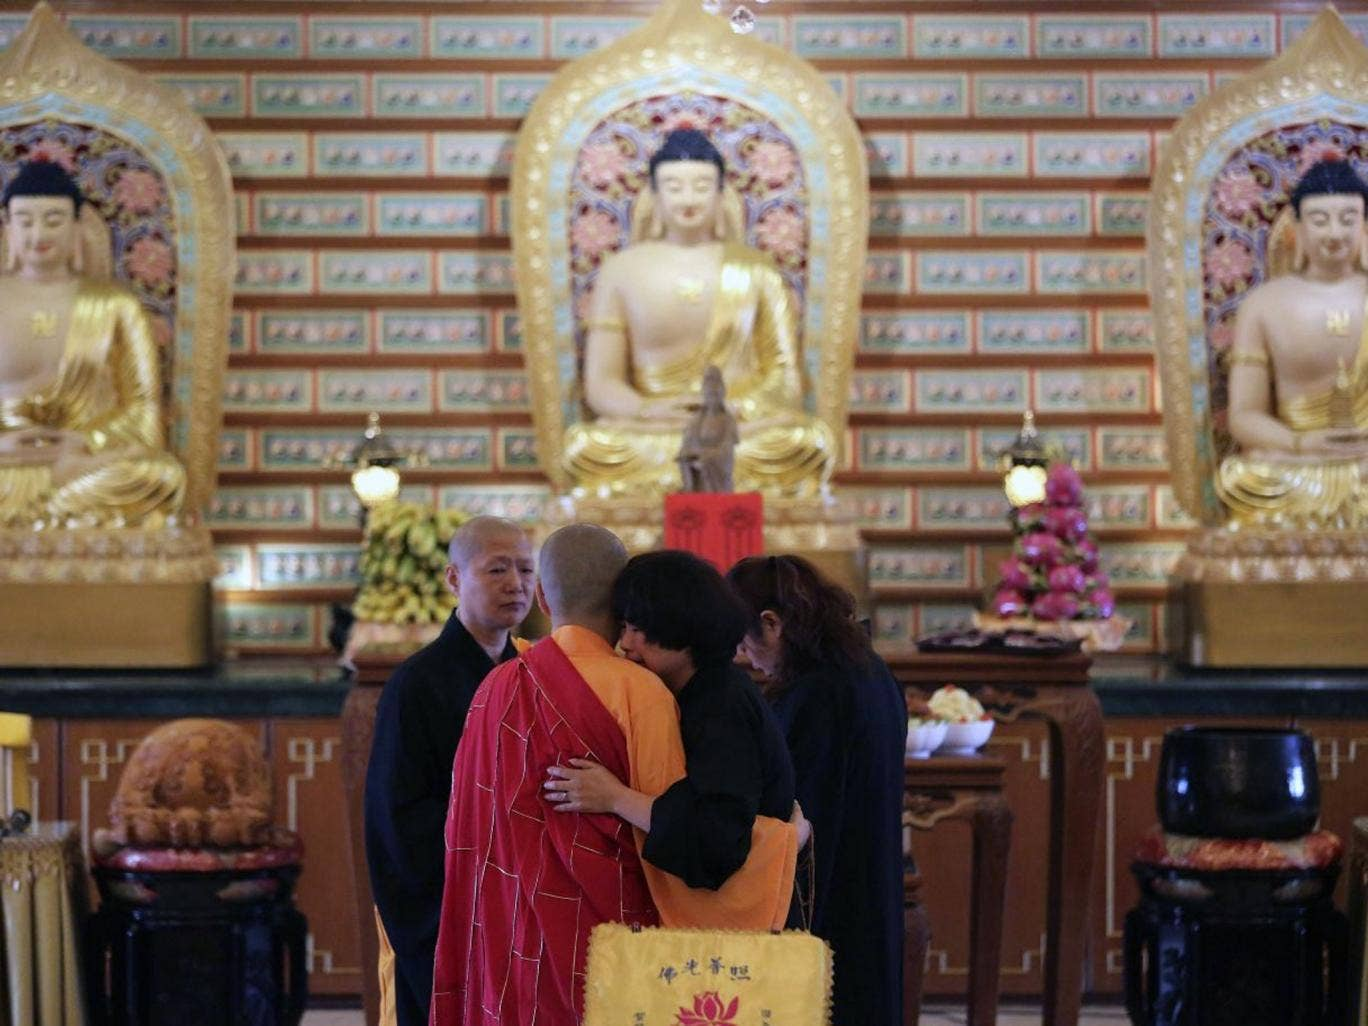 A Chinese relative of passengers on board the missing Malaysia Airlines Flight MH370 is comforted by a monk as she breaks into tears following prayers at a Buddhist temple in Petaling Jaya, Malaysia, Monday March 31, 2014. Relatives from China are in the